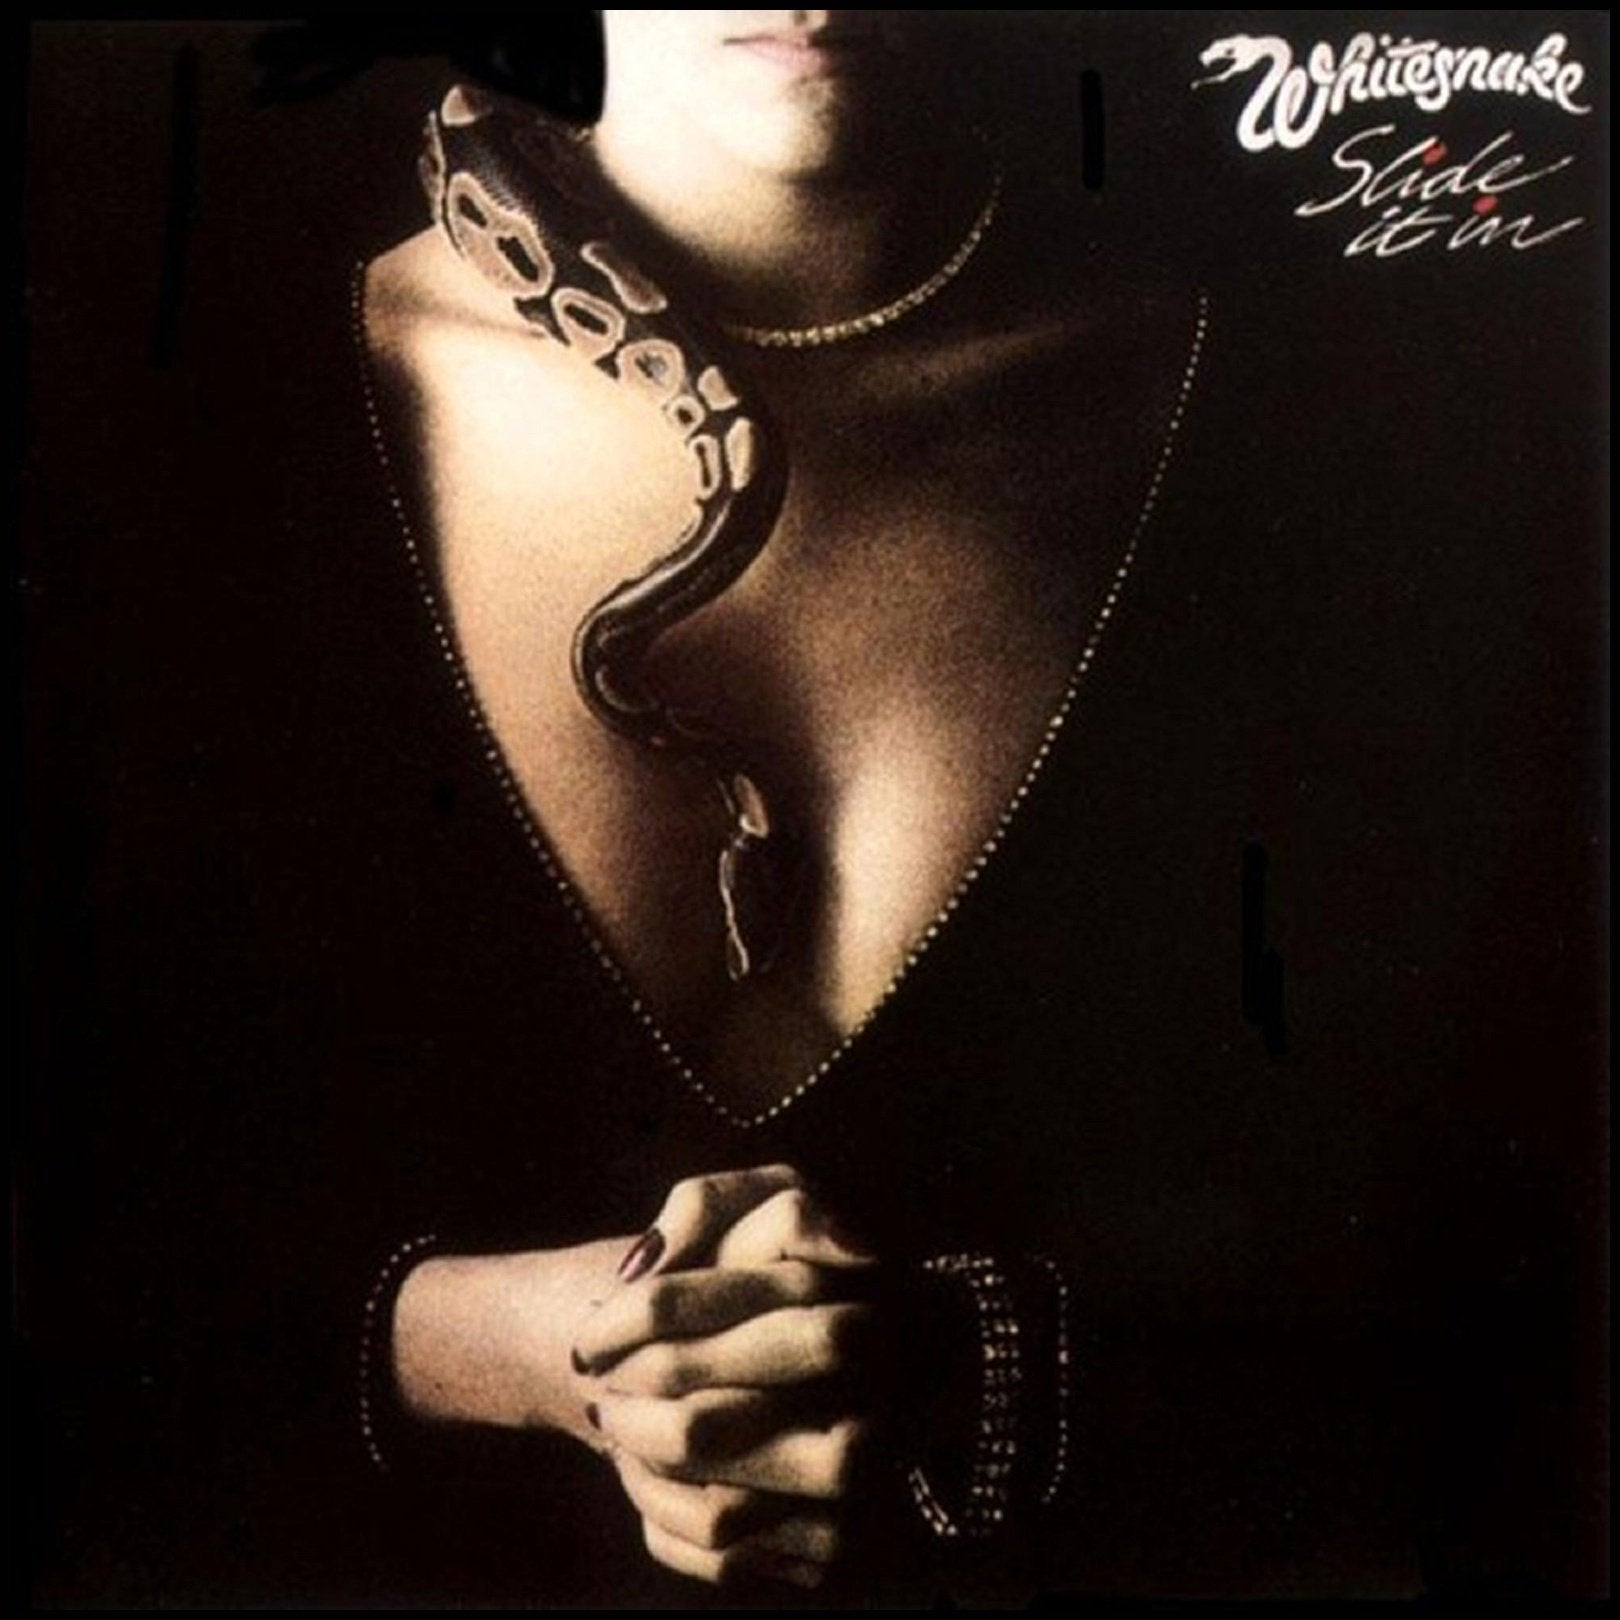 Whitesnake - Whitesnake - Slide It In - Cd